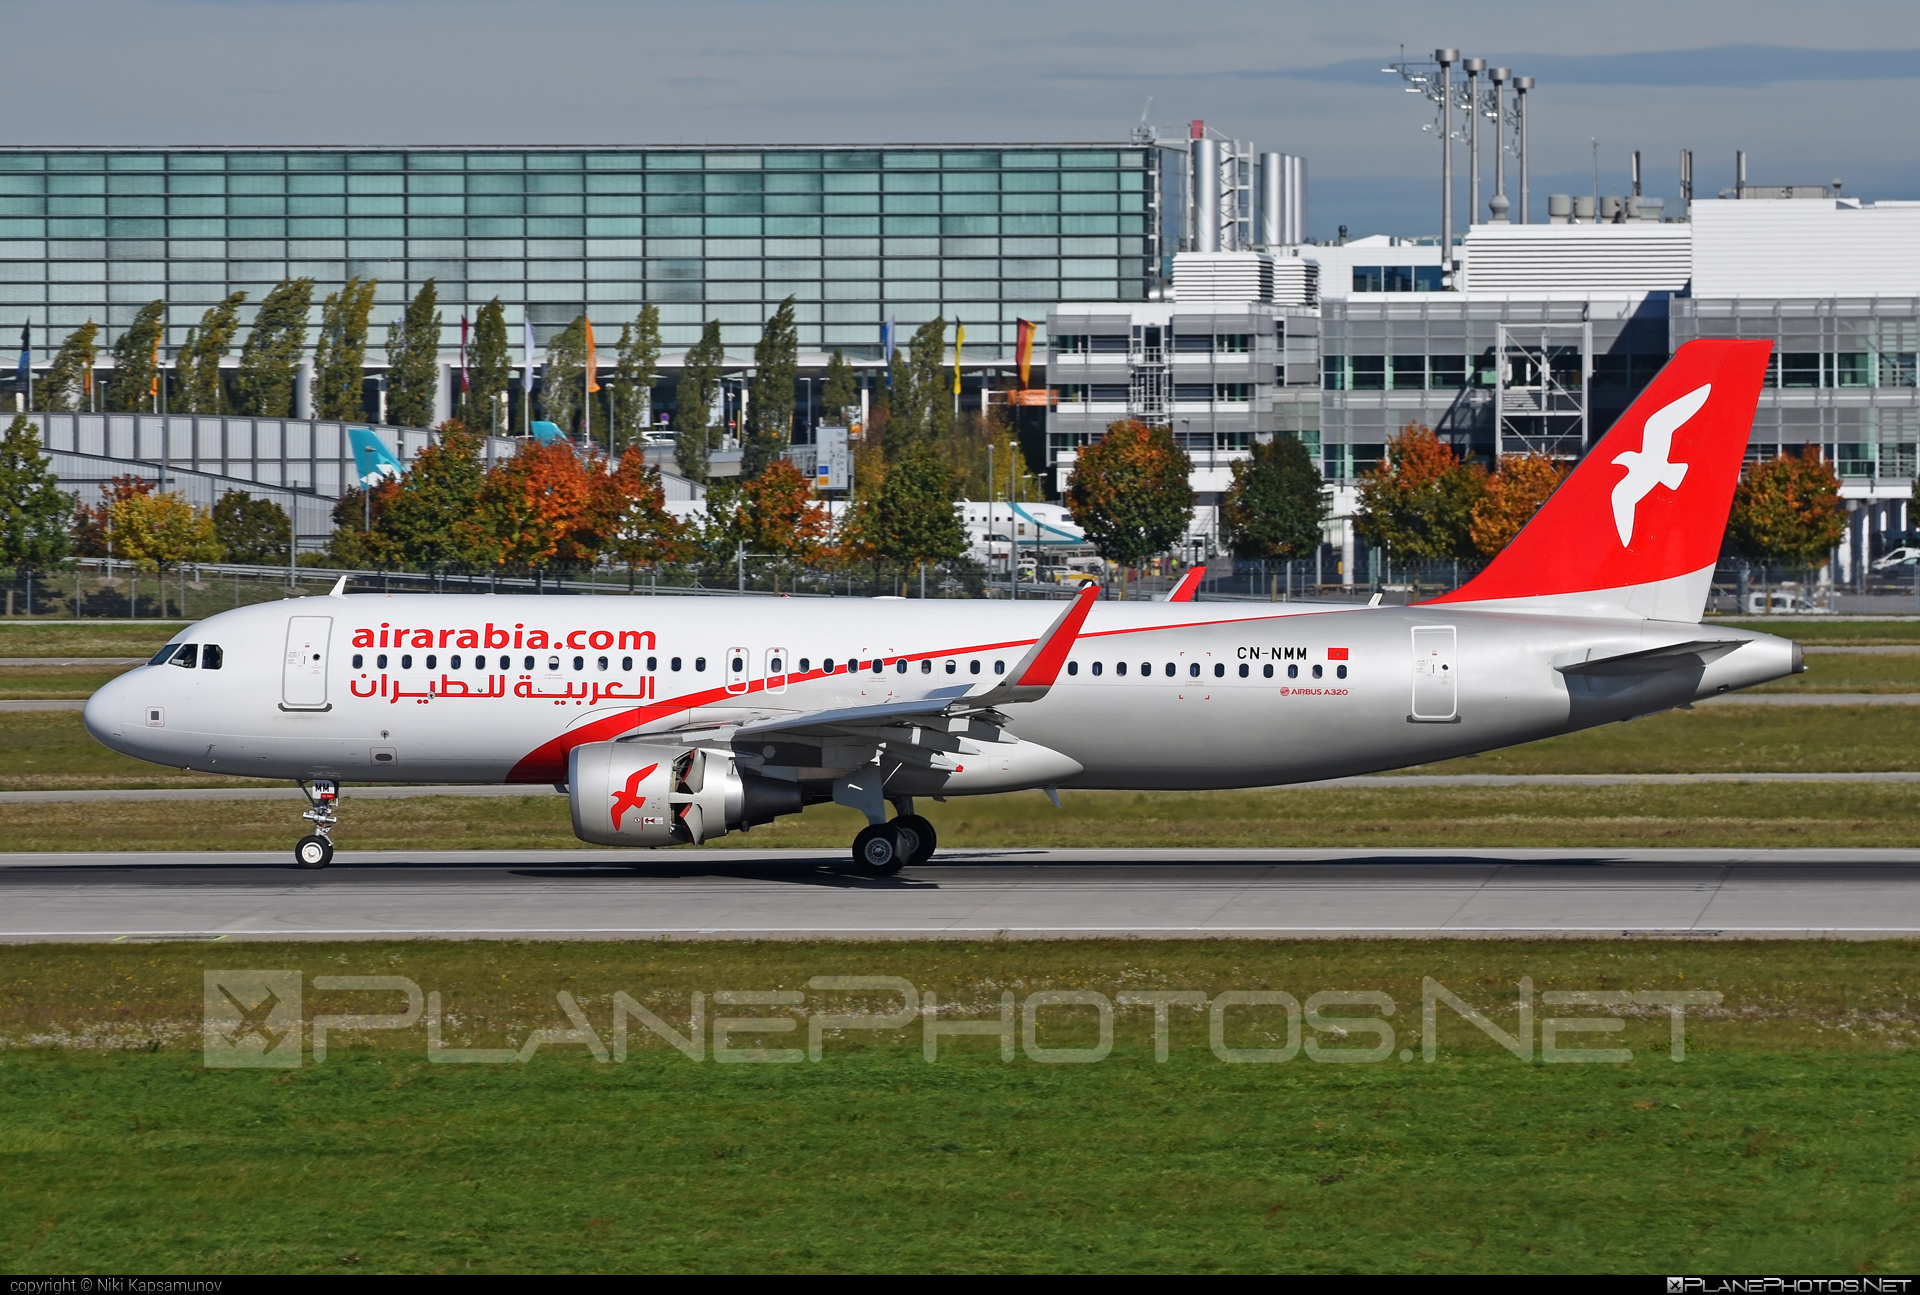 Airbus A320-214 - CN-NMM operated by Air Arabia Maroc #a320 #a320family #airarabia #airarabiamaroc #airbus #airbus320